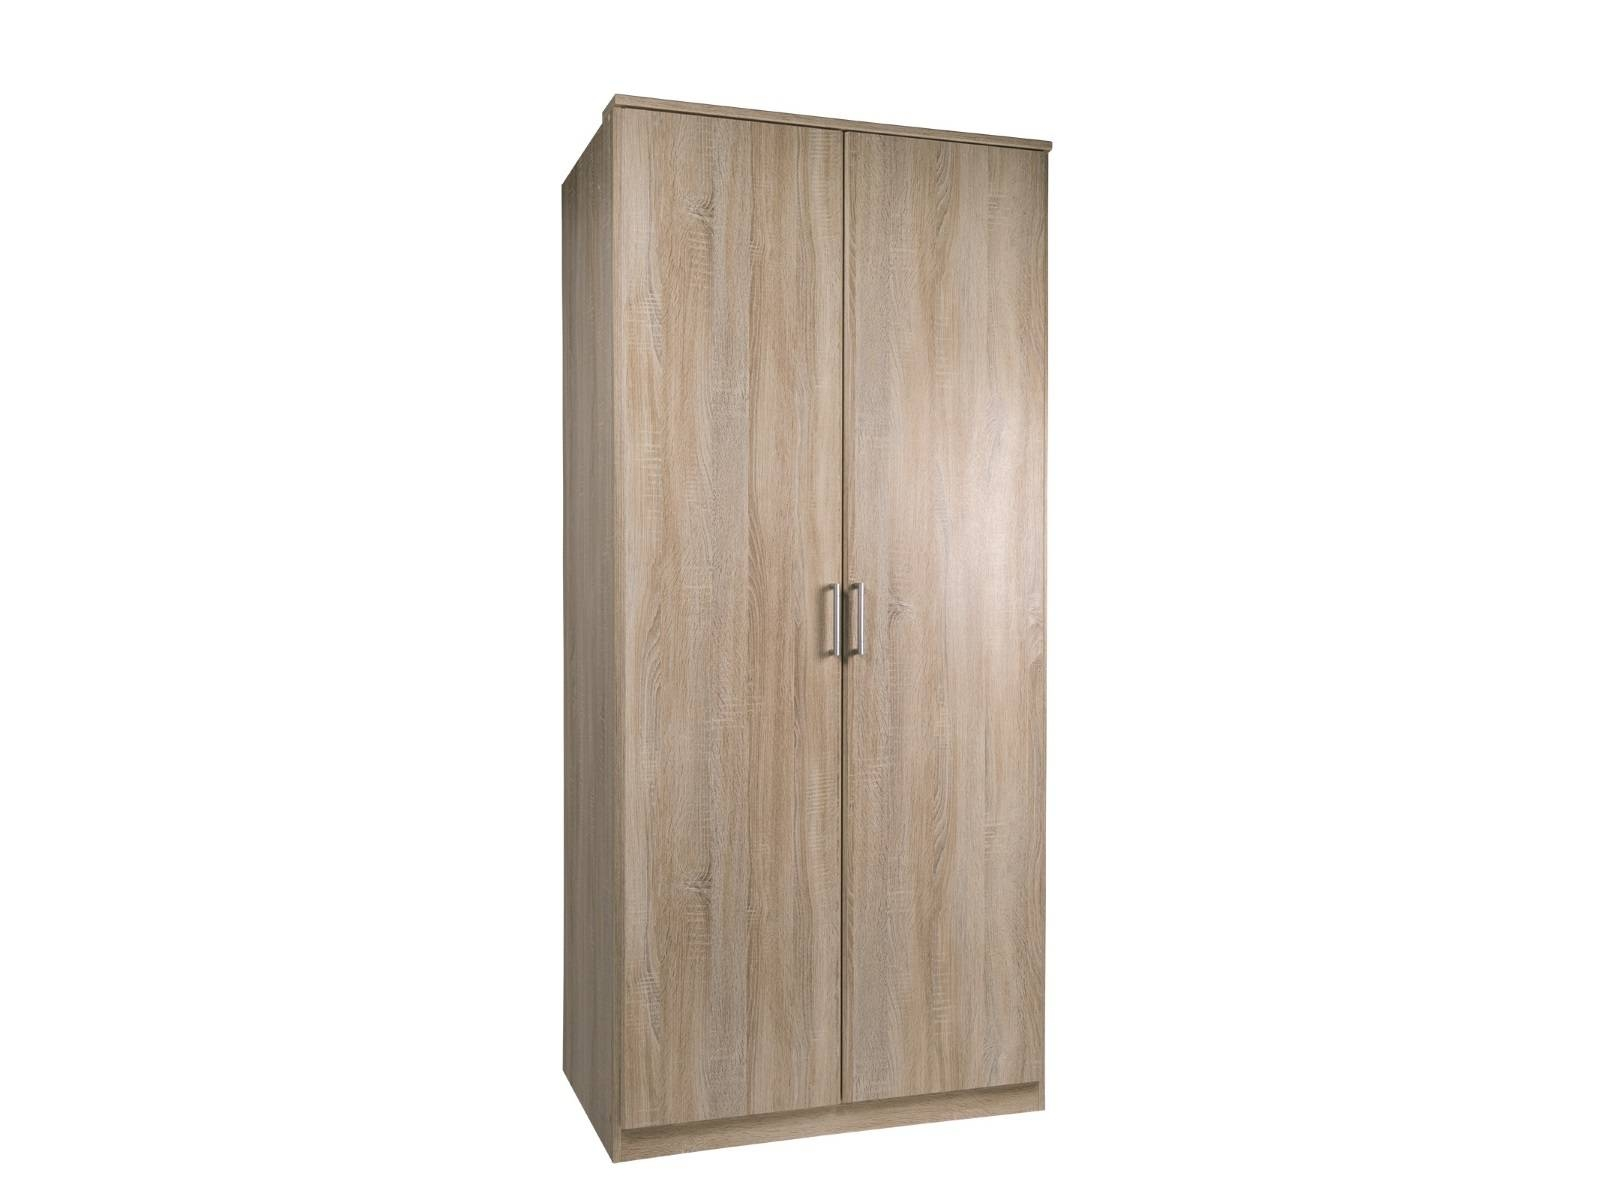 Cheap Wardrobes | Bedroom Furniture For Sale | Double Wardrobe intended for Cheap Wardrobes Sets (Image 5 of 15)